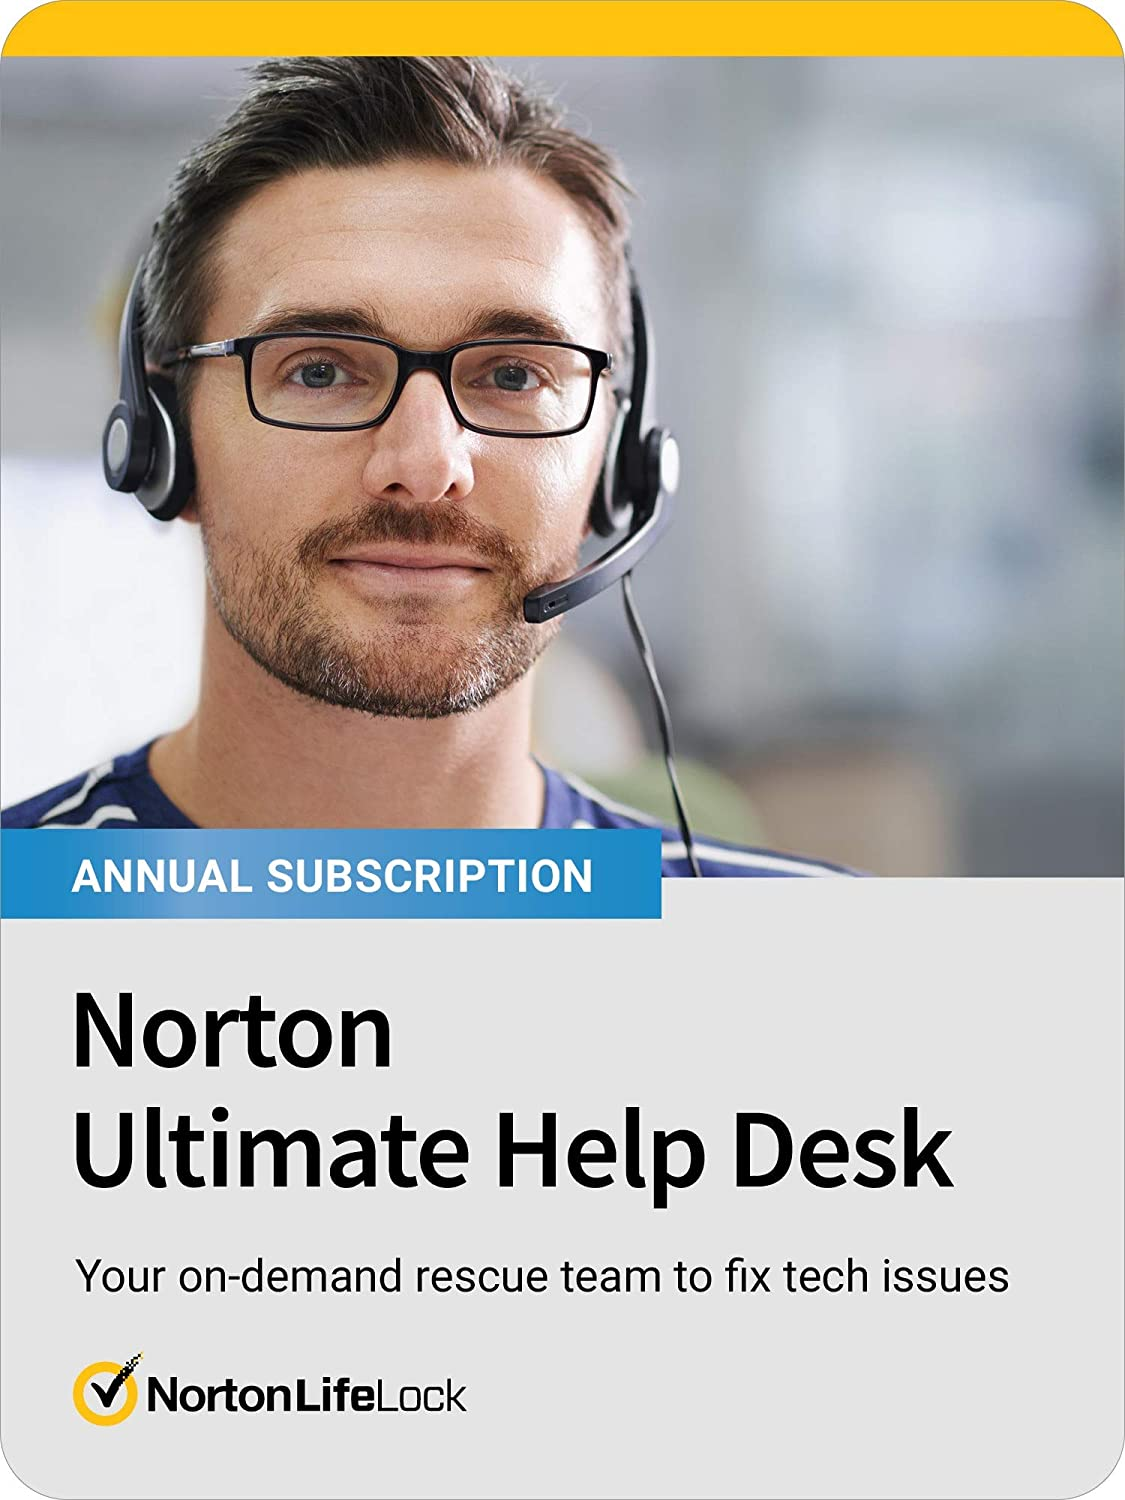 Norton Ultimate Help Desk Kansas City Mall Annual Your 3 Excellence Devices Subscription -